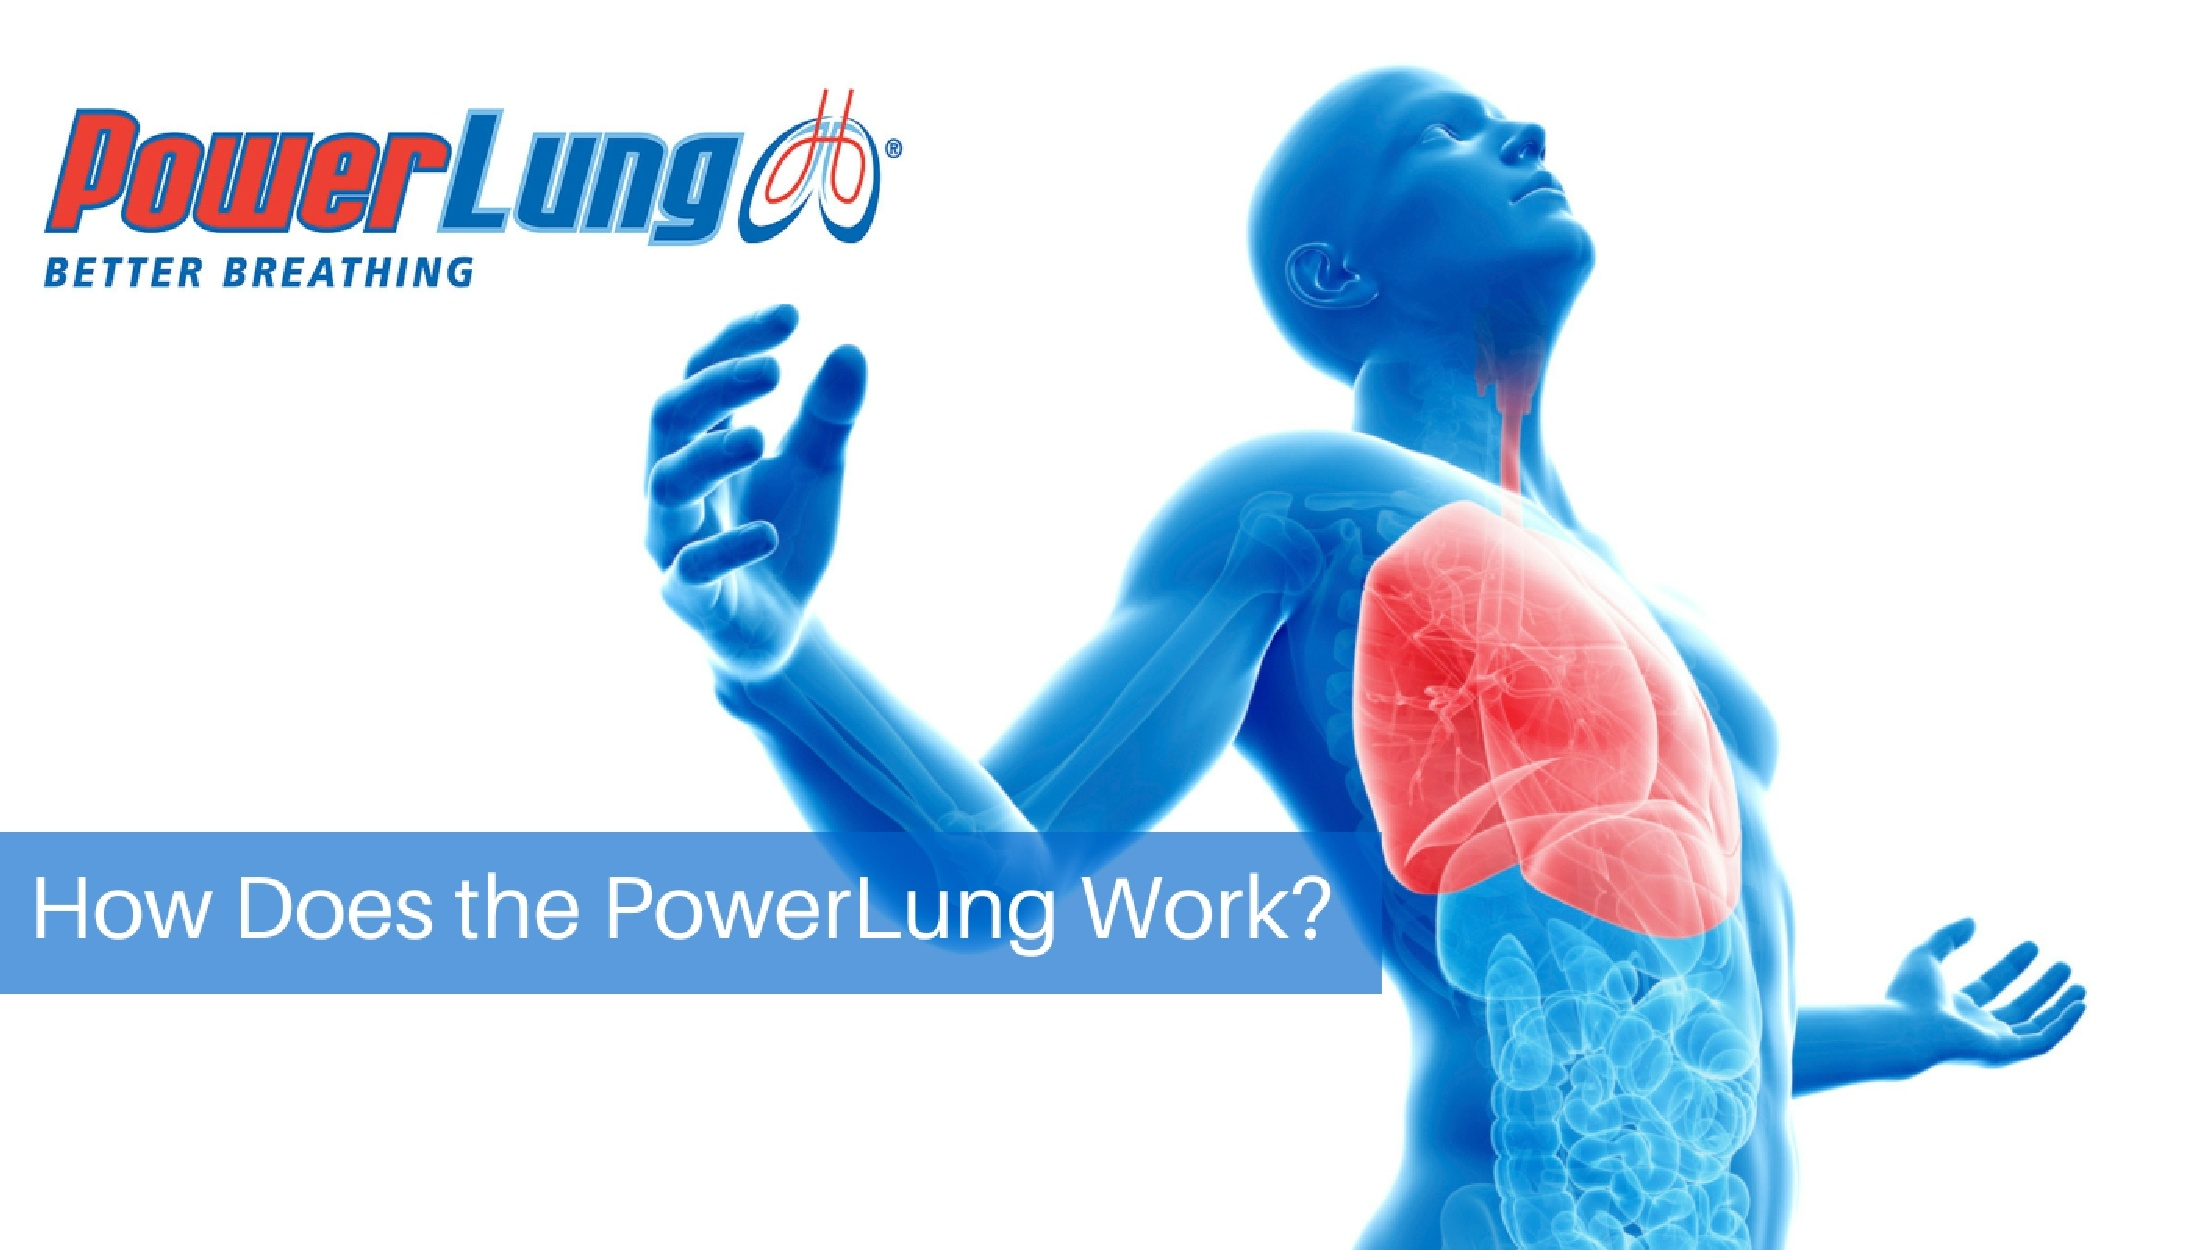 PowerLung - How Does the PowerLung Work-.jpg